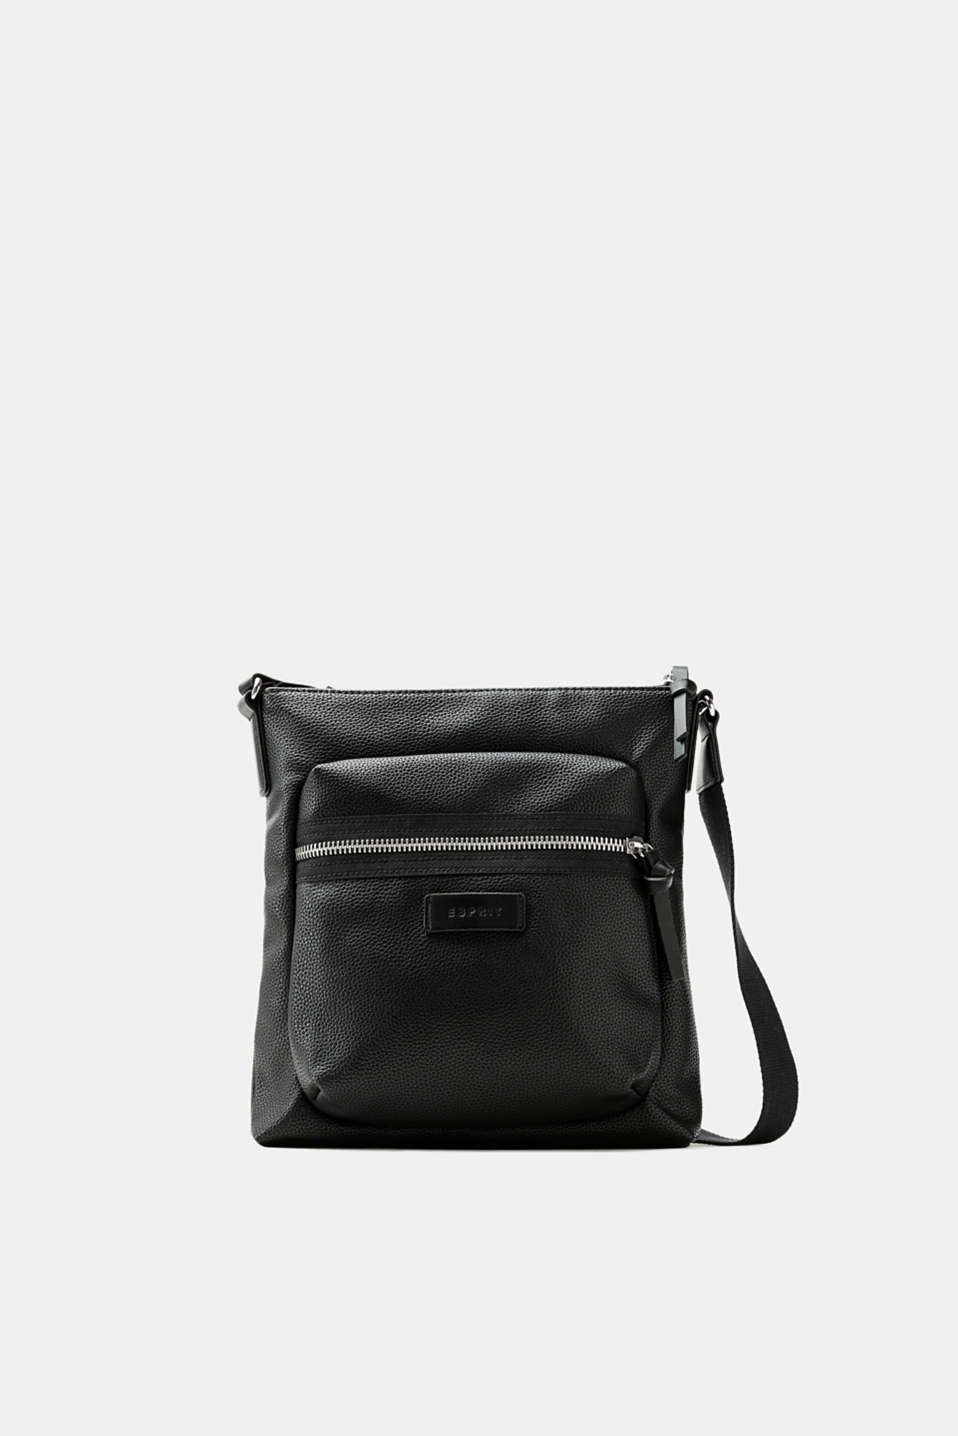 An everyday essential: this shoulder bag made of authentically grained faux leather is versatile and has a compact shape.